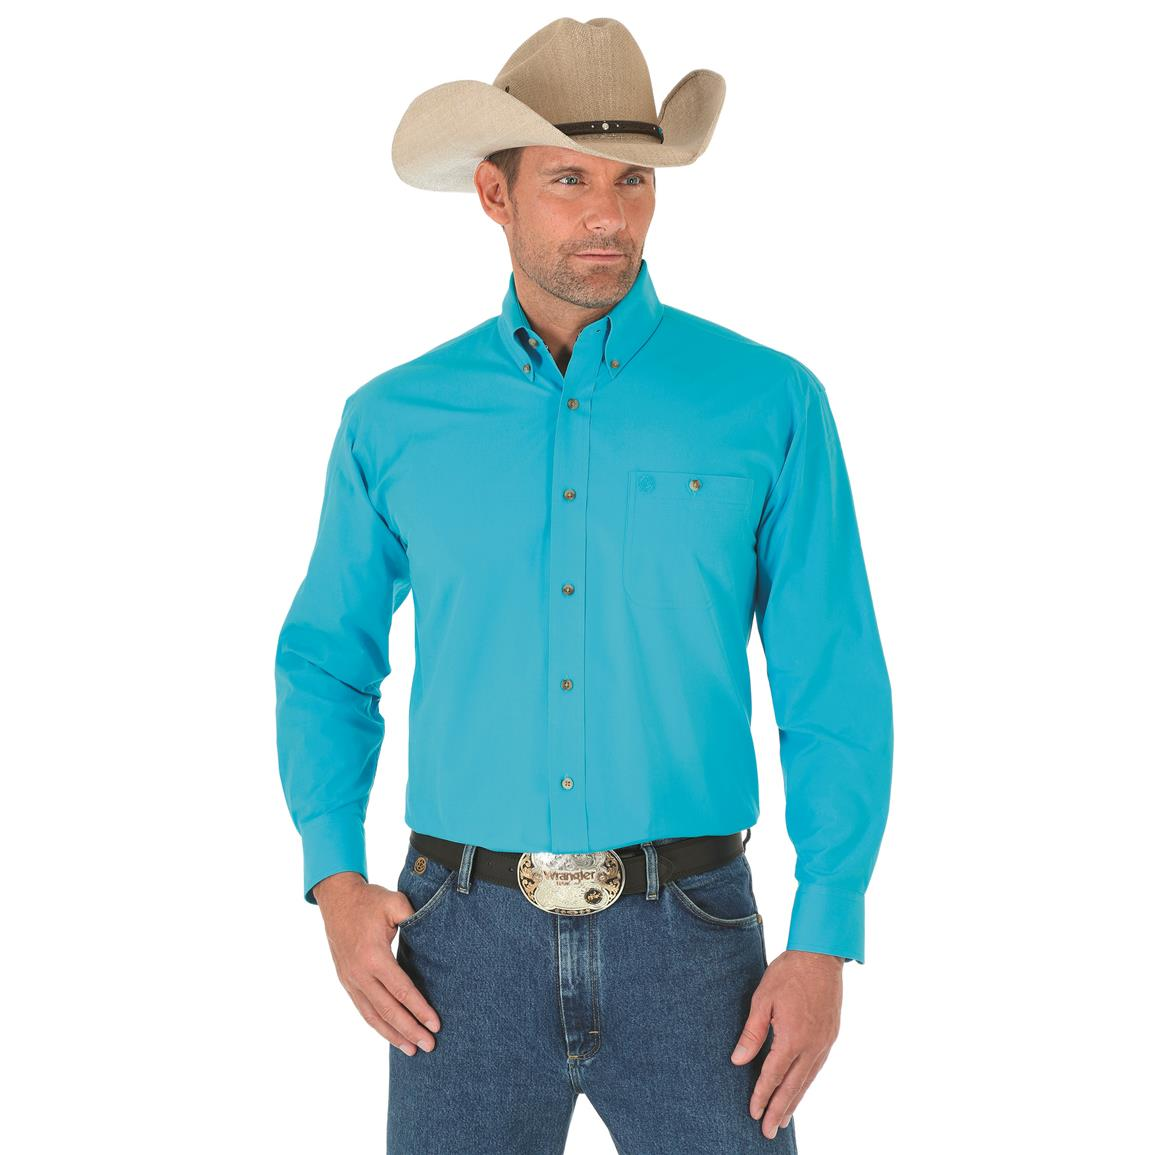 Wrangler George Strait Men's Long Sleeve Button Down Solid Shirt, Turquoise